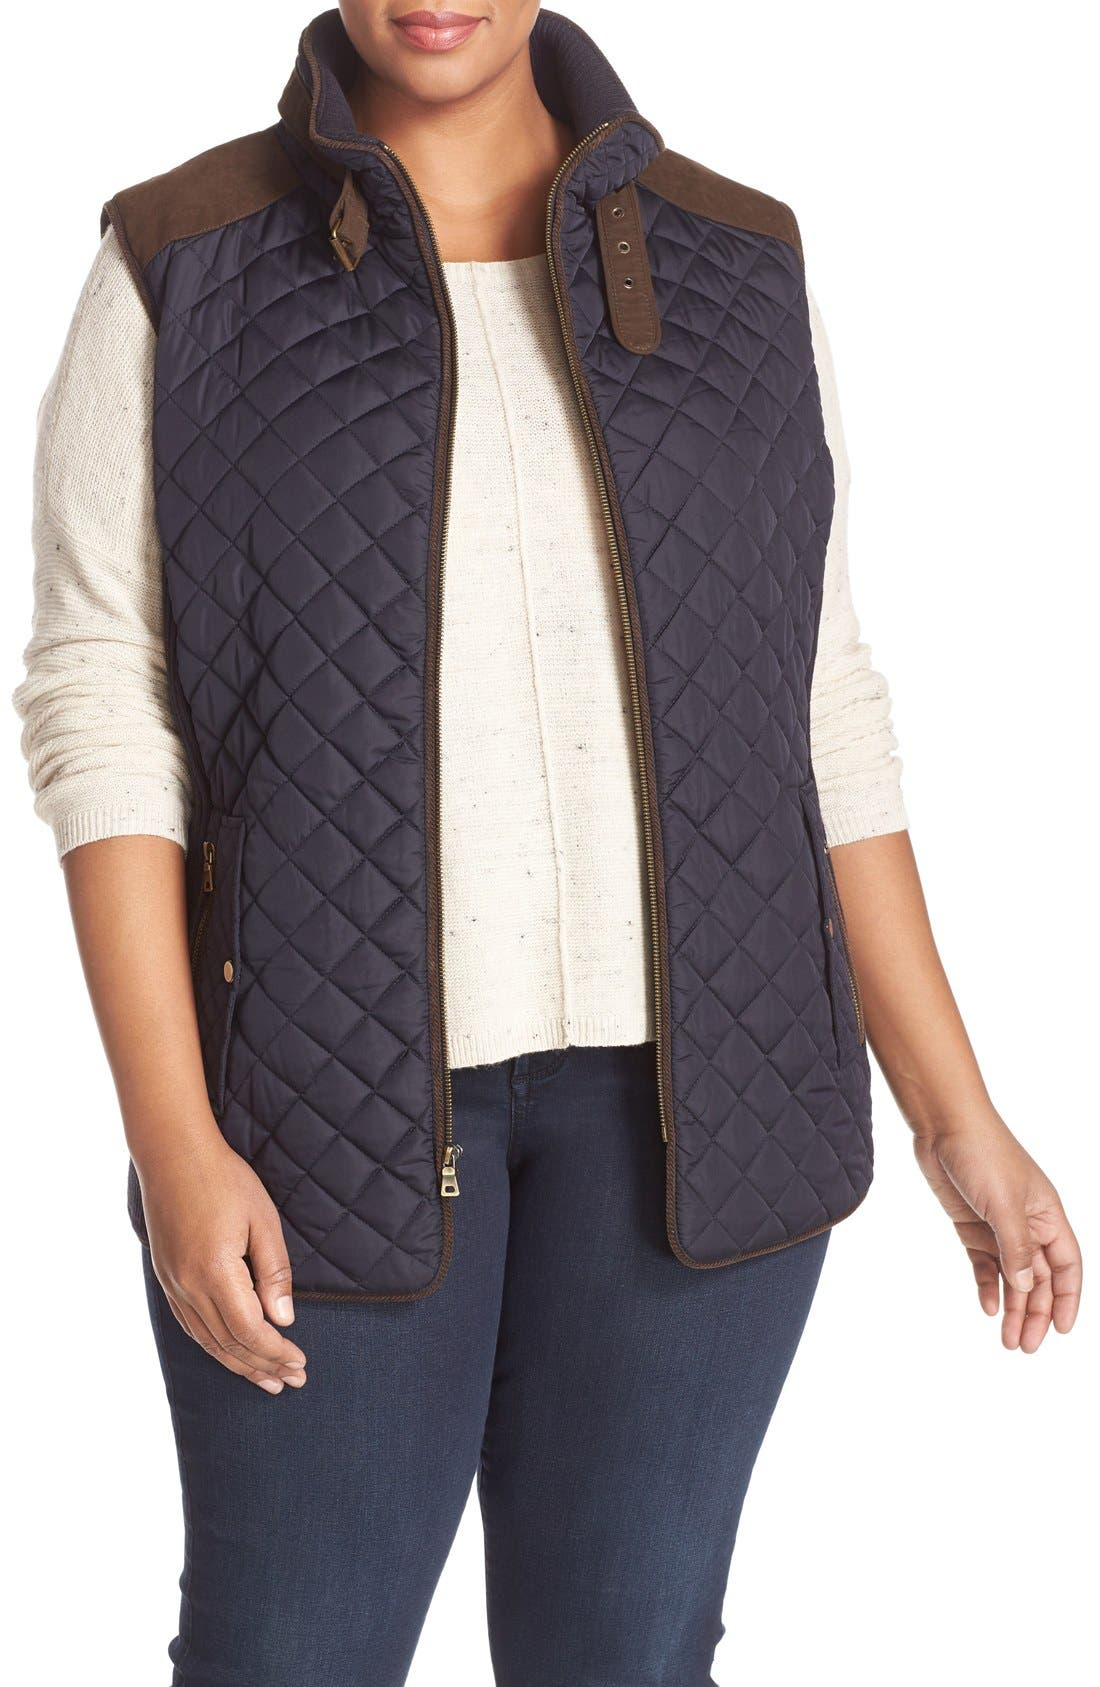 Alternate Image 1 Selected - Gallery Quilted Vest with Faux Suede Trim (Plus Size)